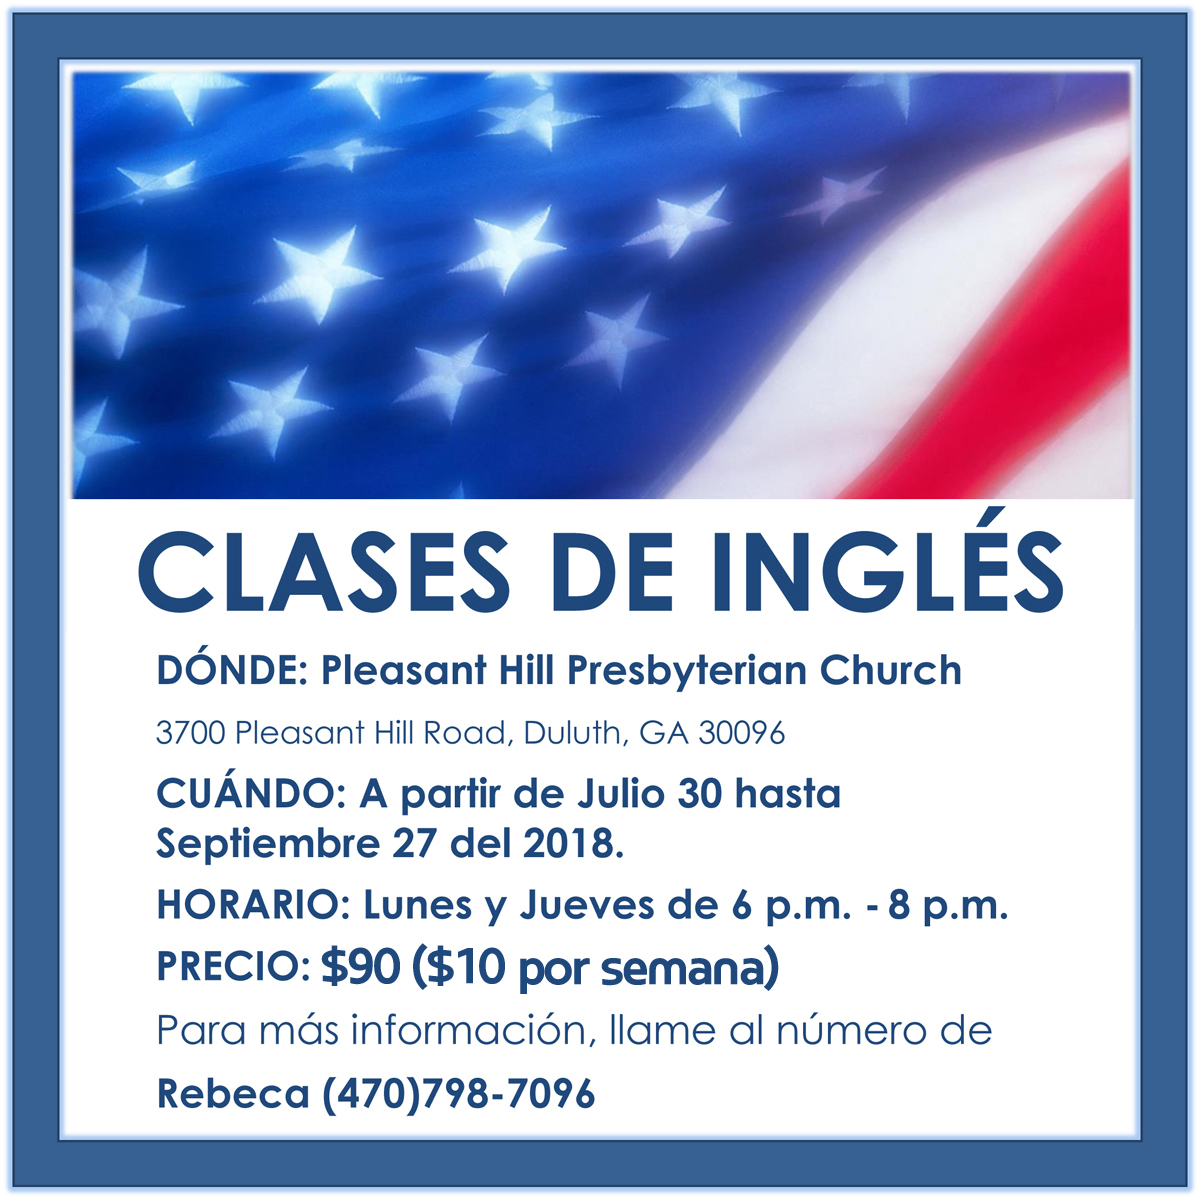 CLASE DE INGLÉS flyer - Copy Square.jpg